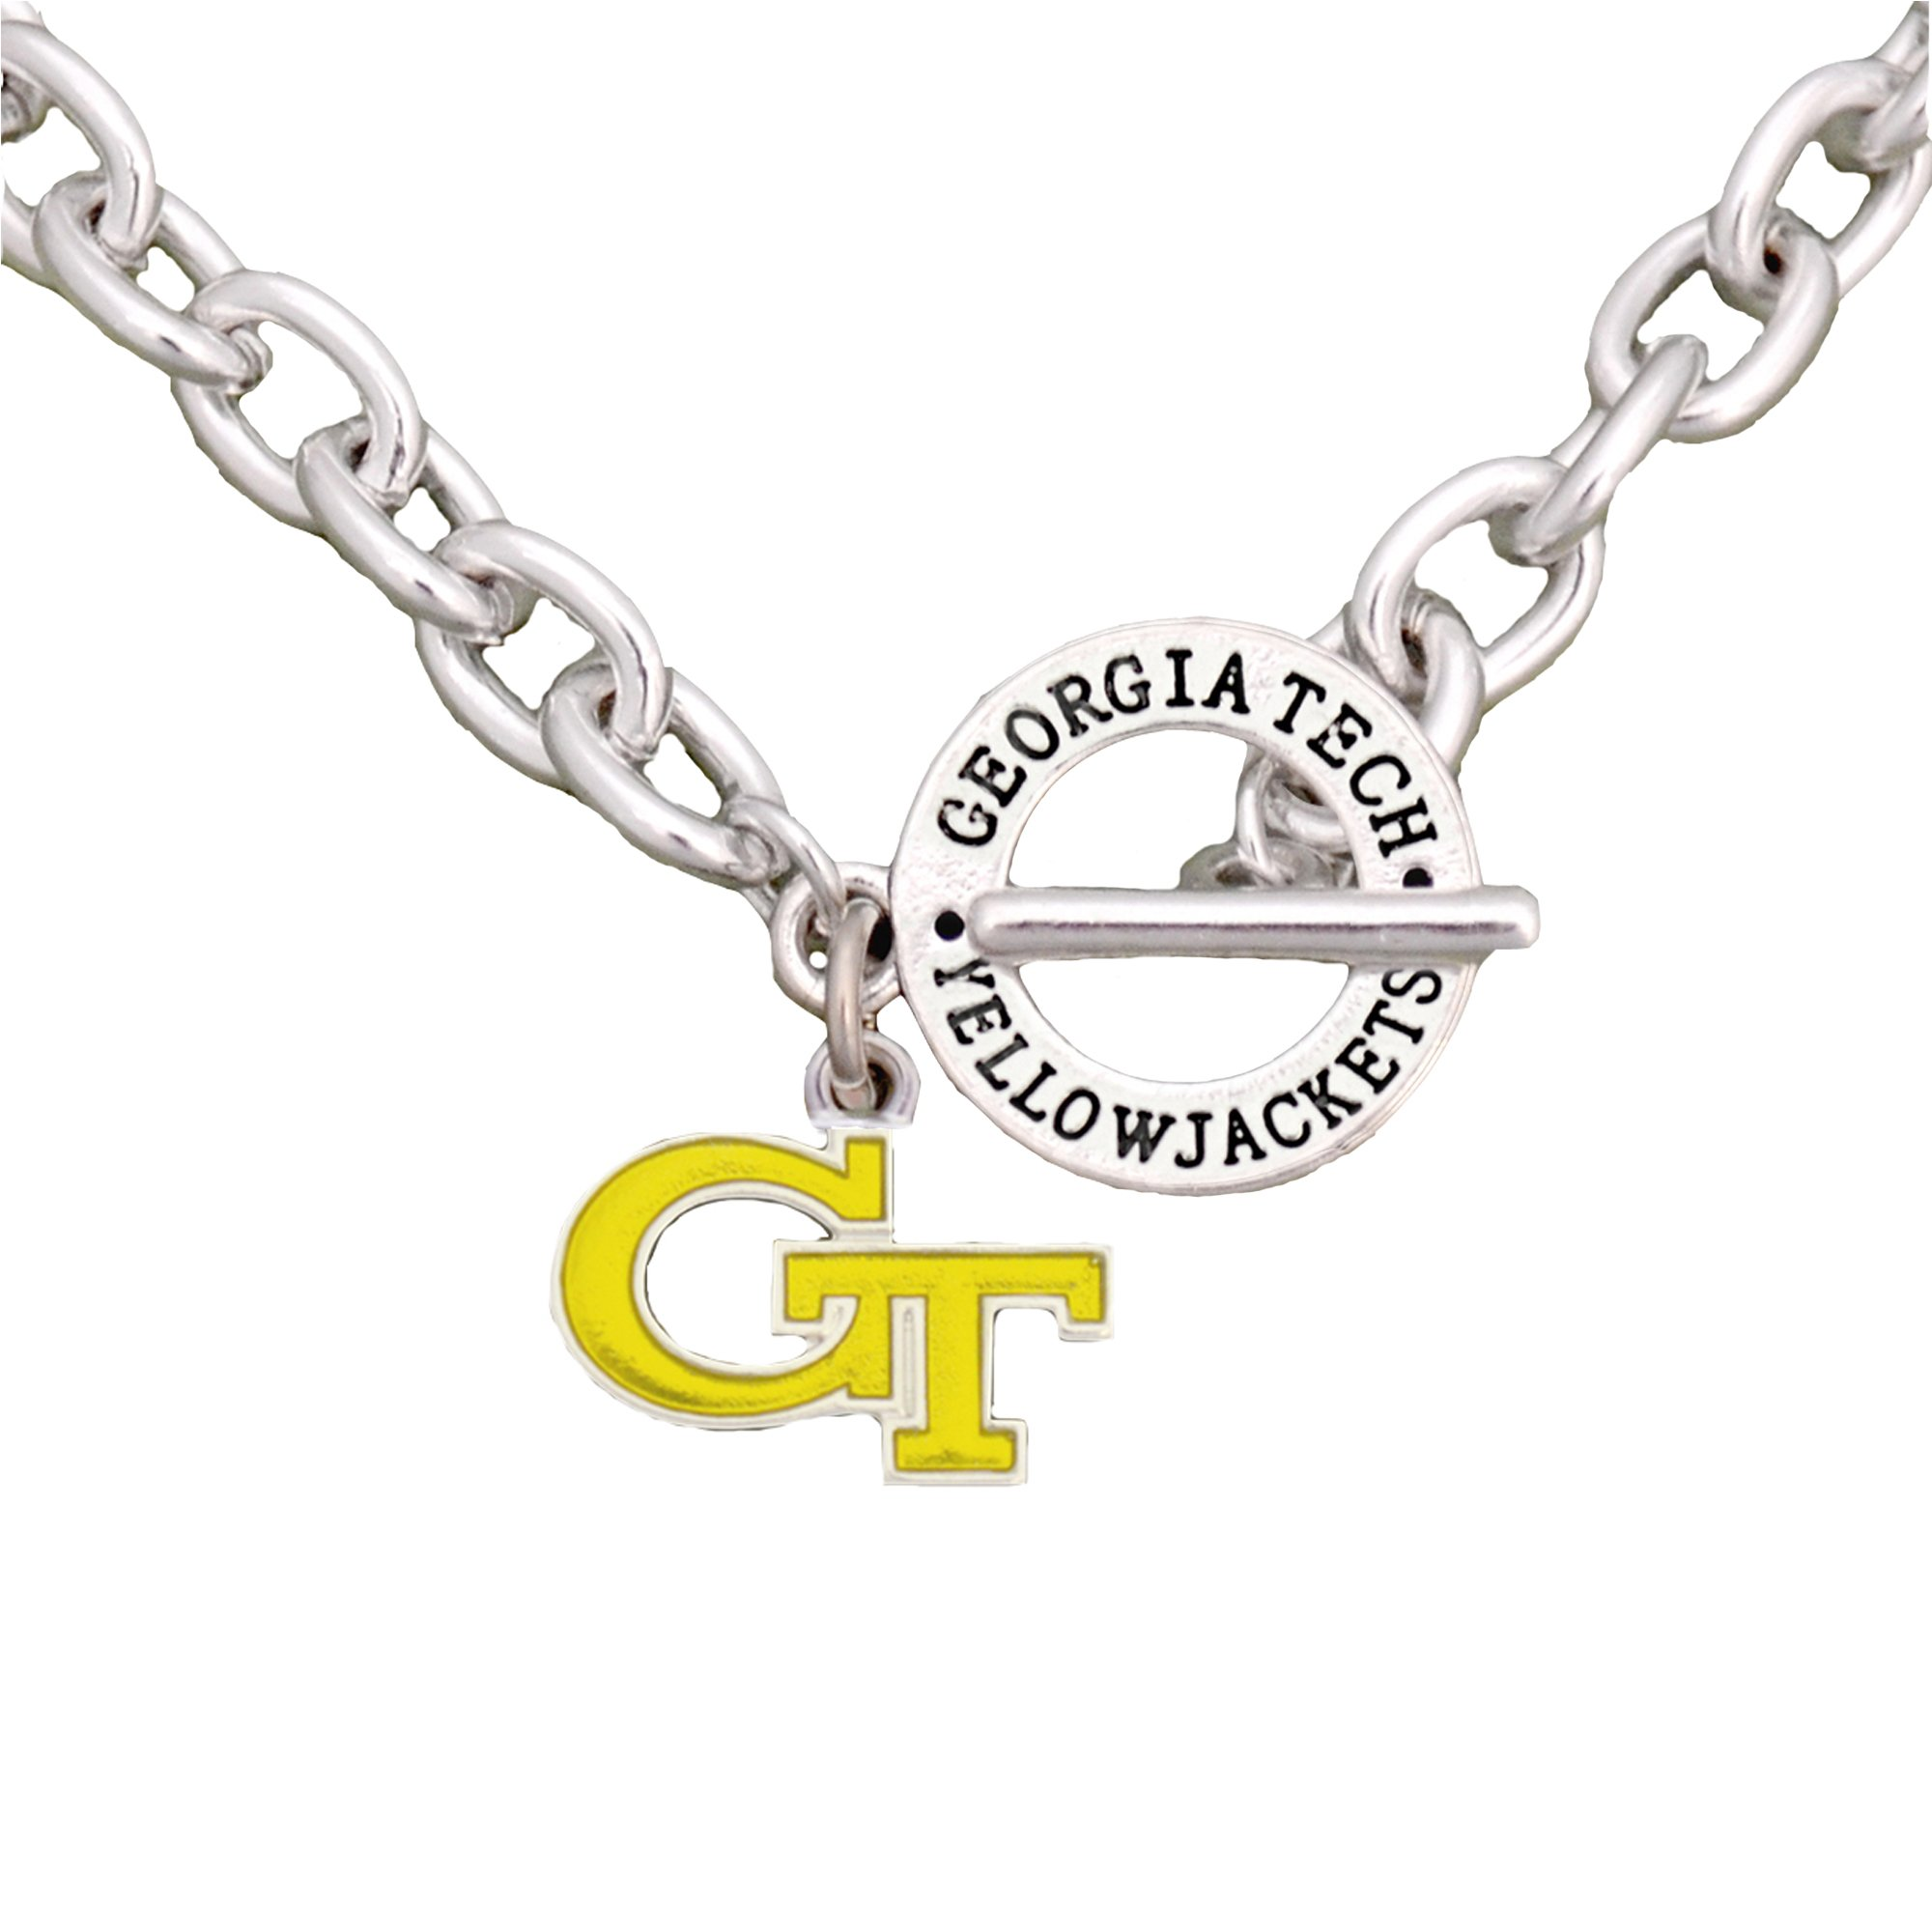 Sports Accessory Store Georgia Tech Yellow Jackets Team Name Toggle Silver Necklace Charm Jewelry GTU